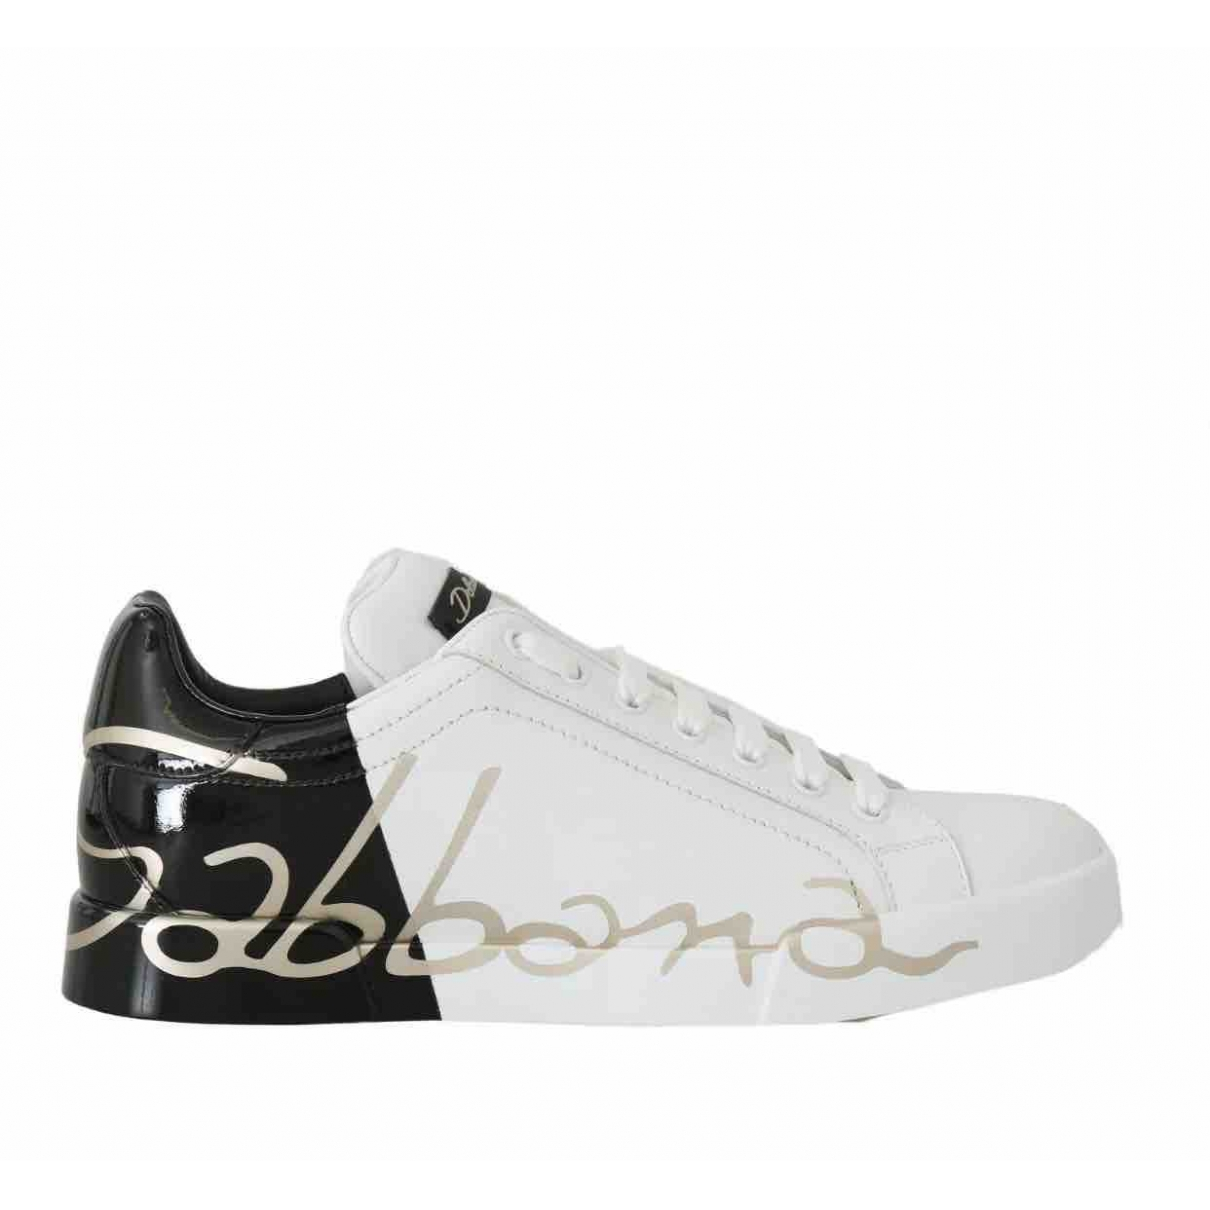 Dolce & Gabbana \N White Leather Trainers for Women 37 EU